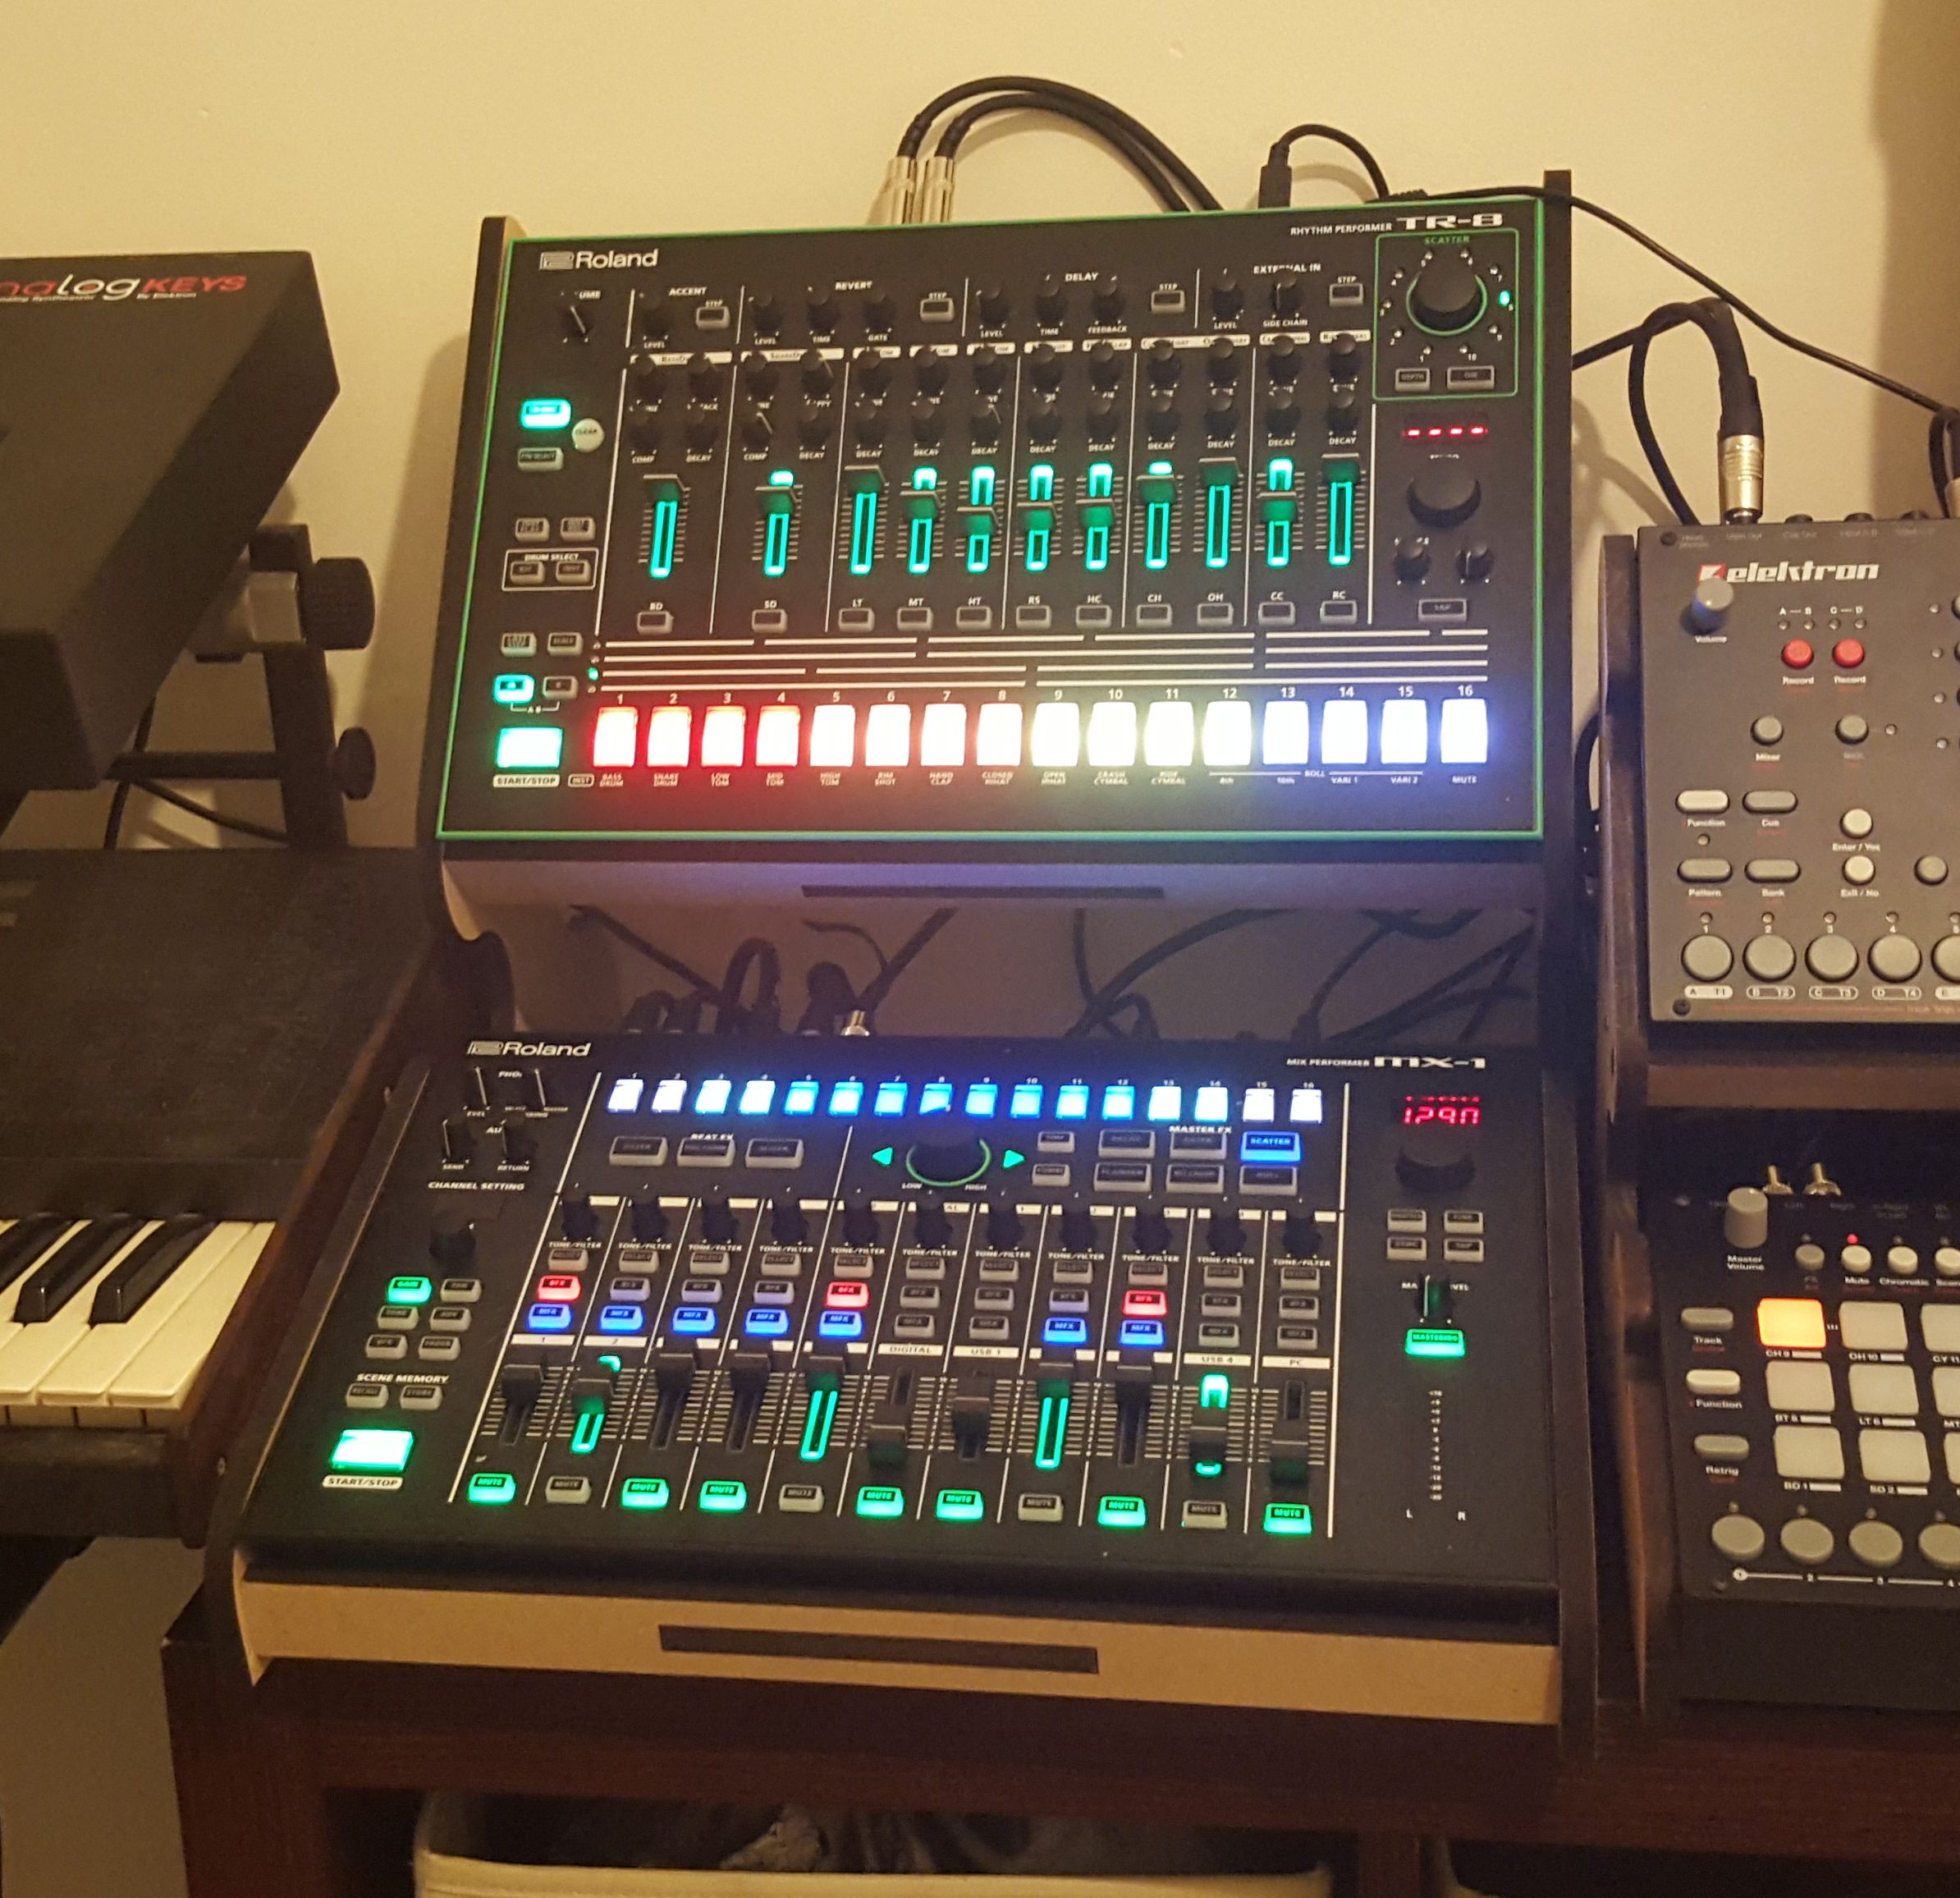 Roland Intros Aira Mx 1 Mix Performer The Nerve Center: Pin By Tucker Harper On DAW-less